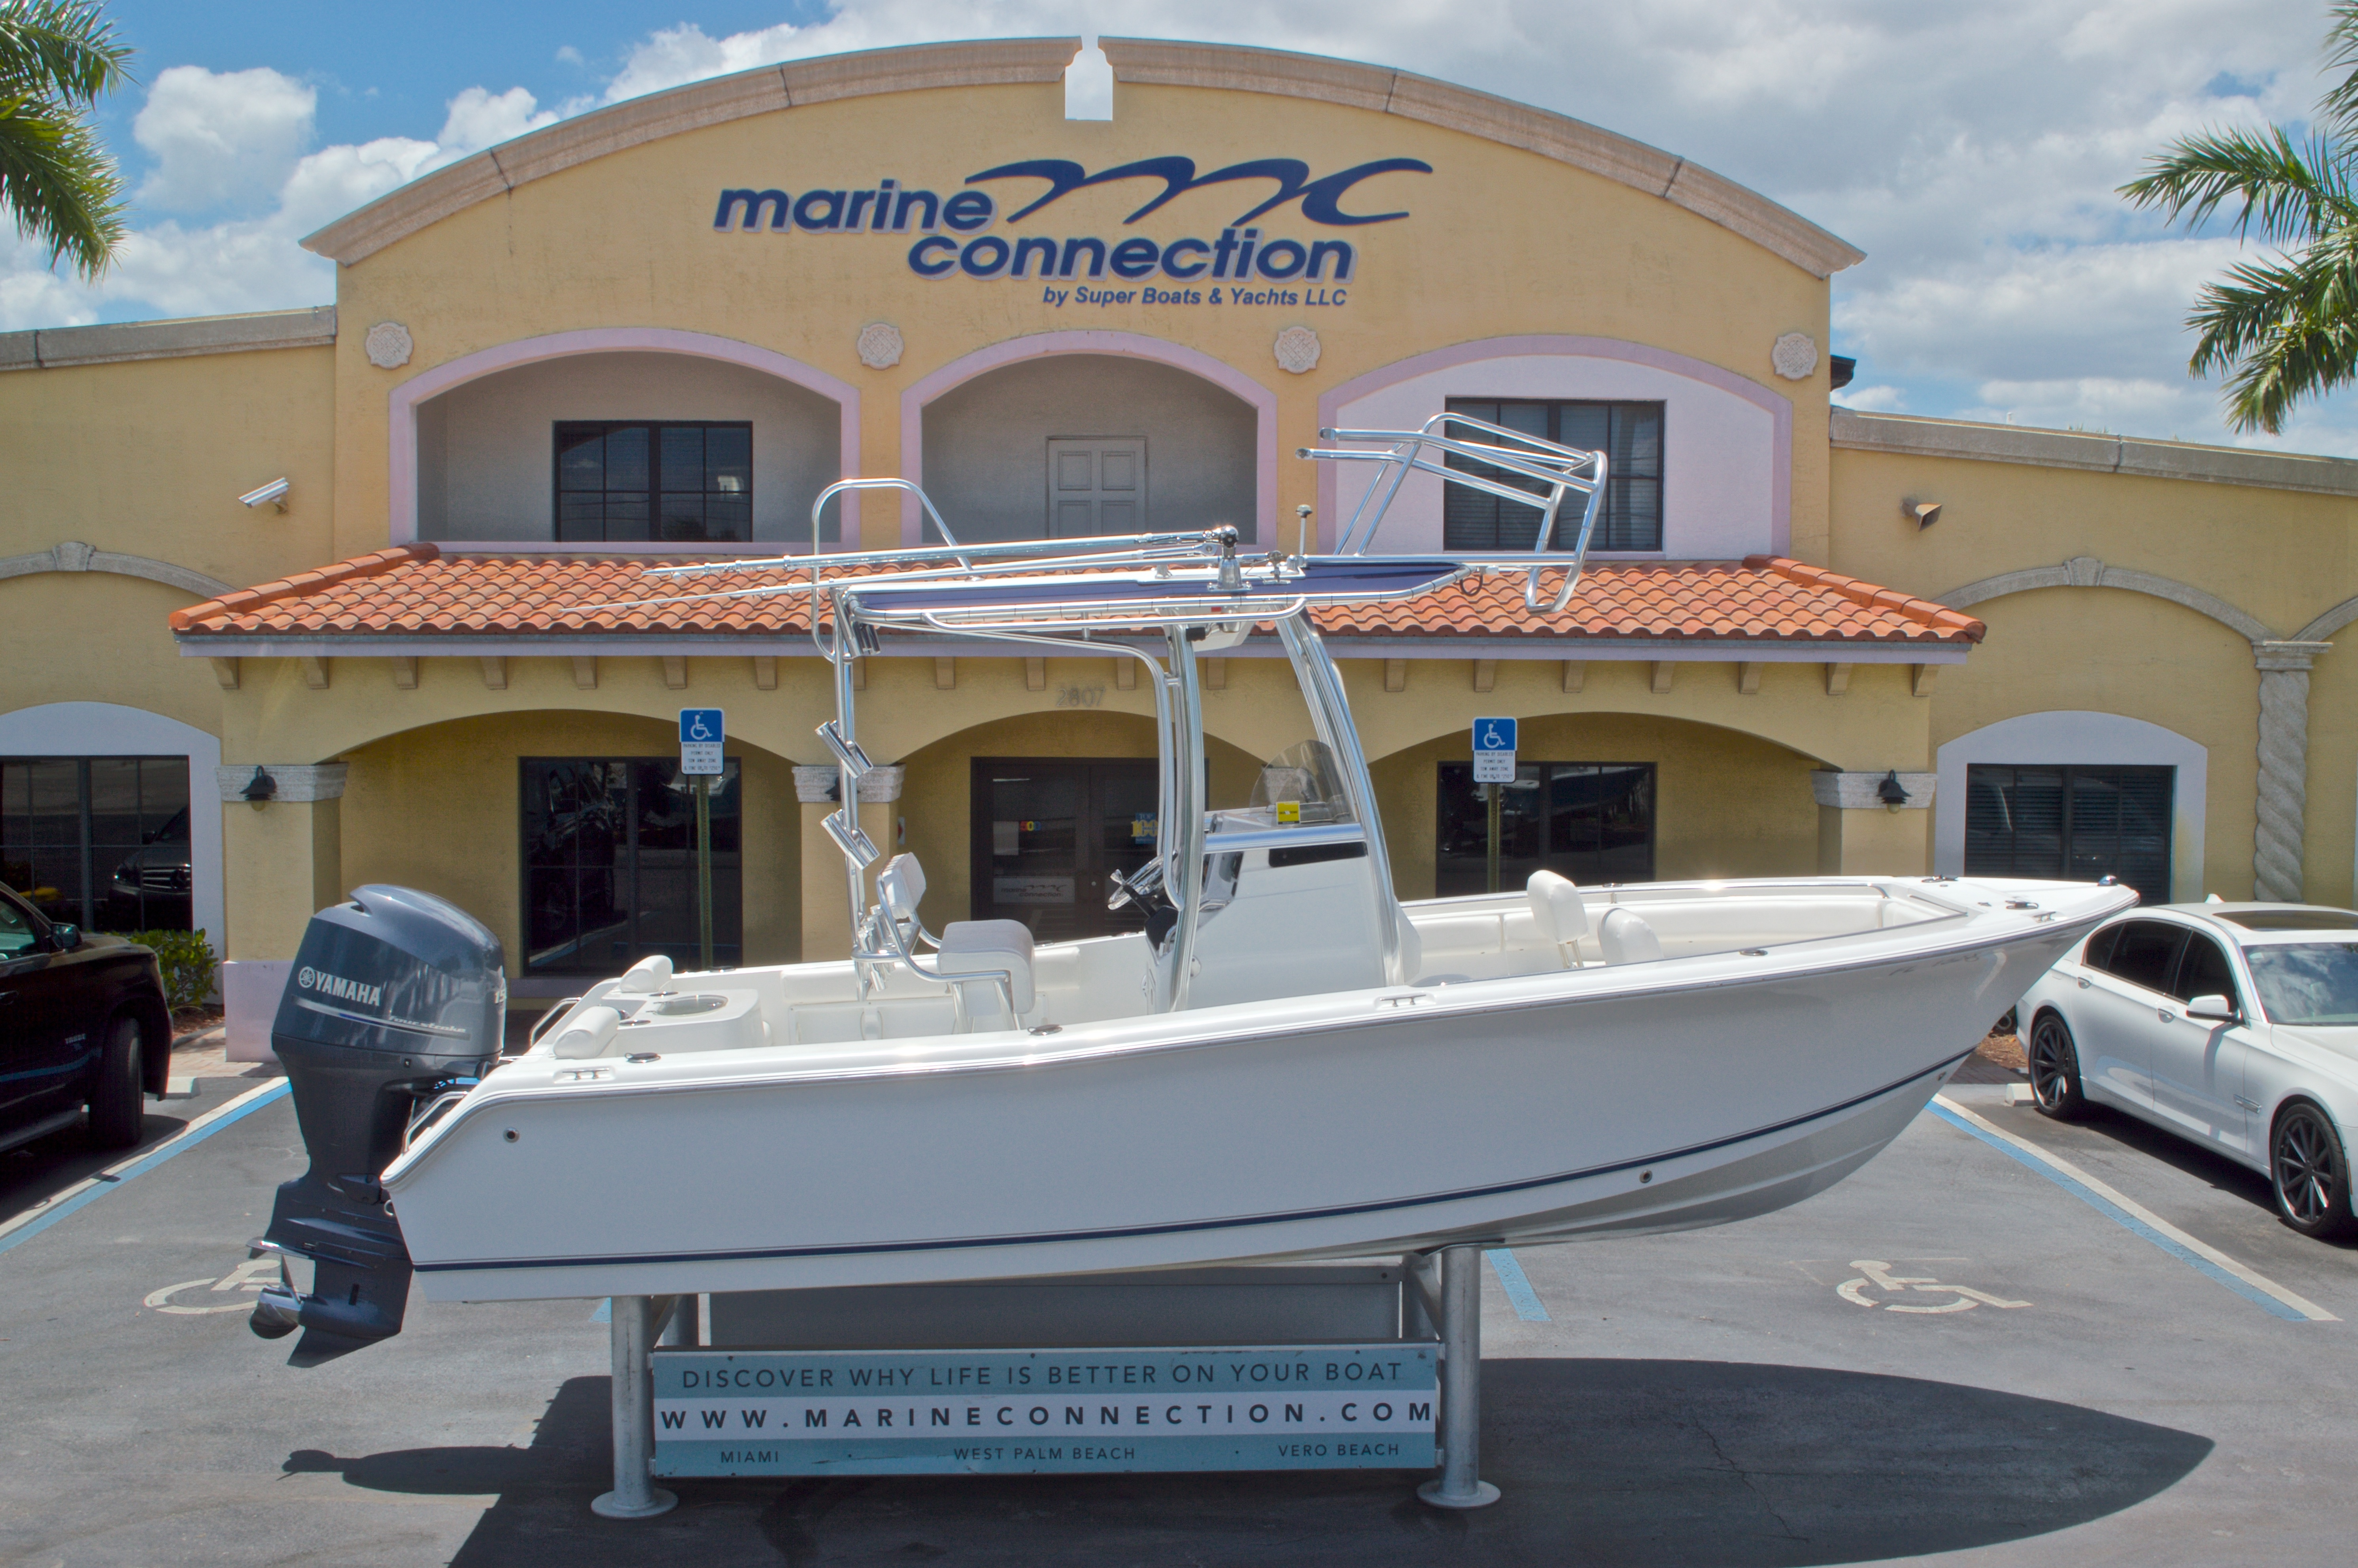 Thumbnail 1 for Used 2013 Sea Hunt 210 Triton boat for sale in West Palm Beach, FL